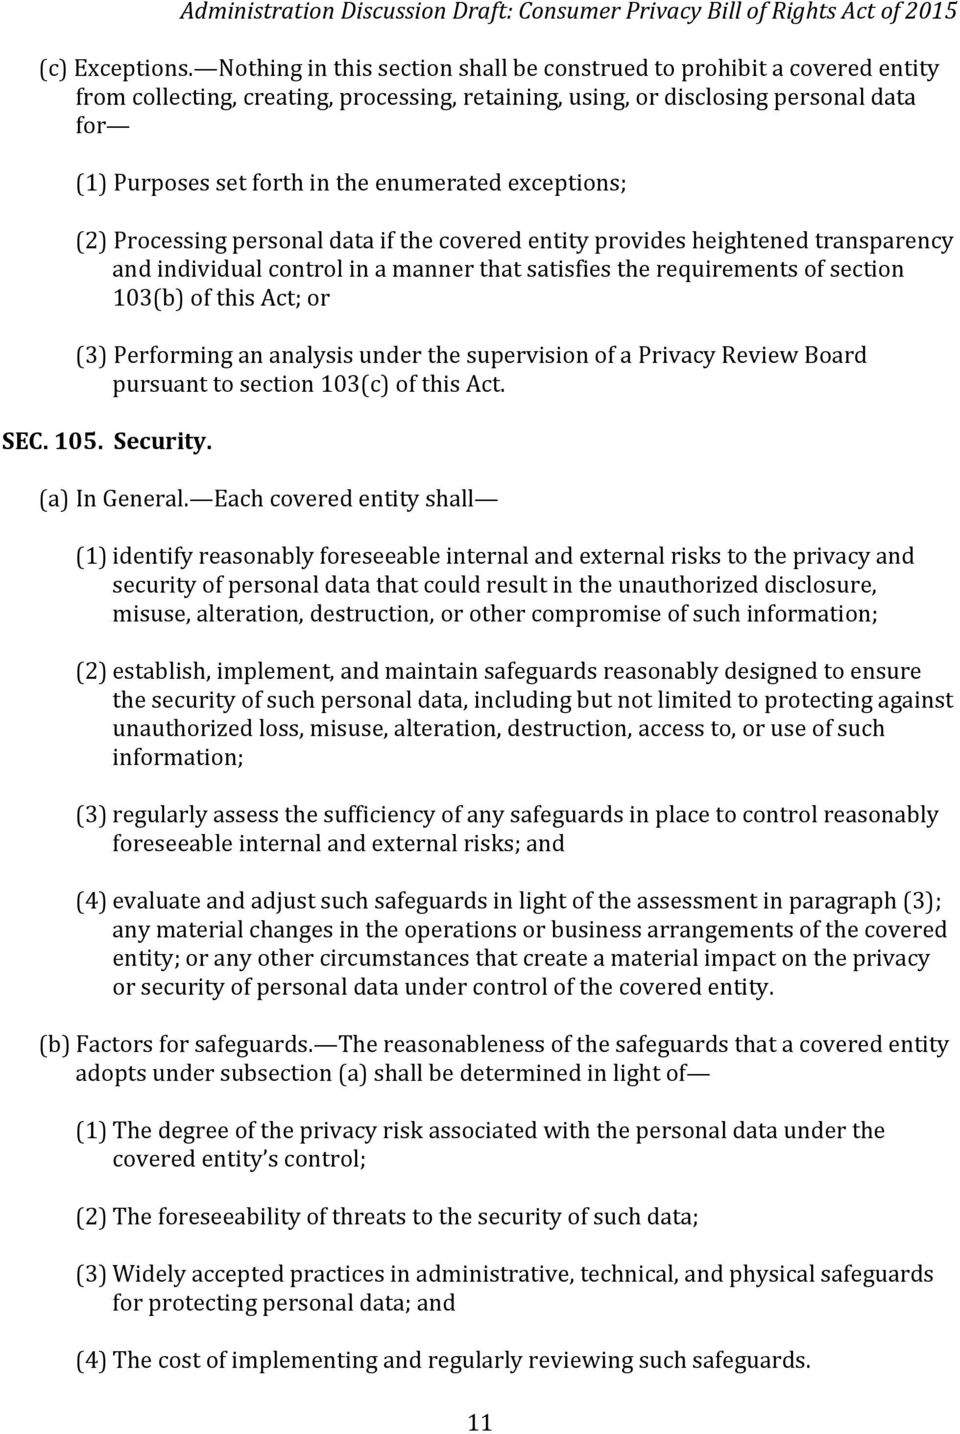 enumerated exceptions; (2) Processing personal data if the covered entity provides heightened transparency and individual control in a manner that satisfies the requirements of section 103(b) of this